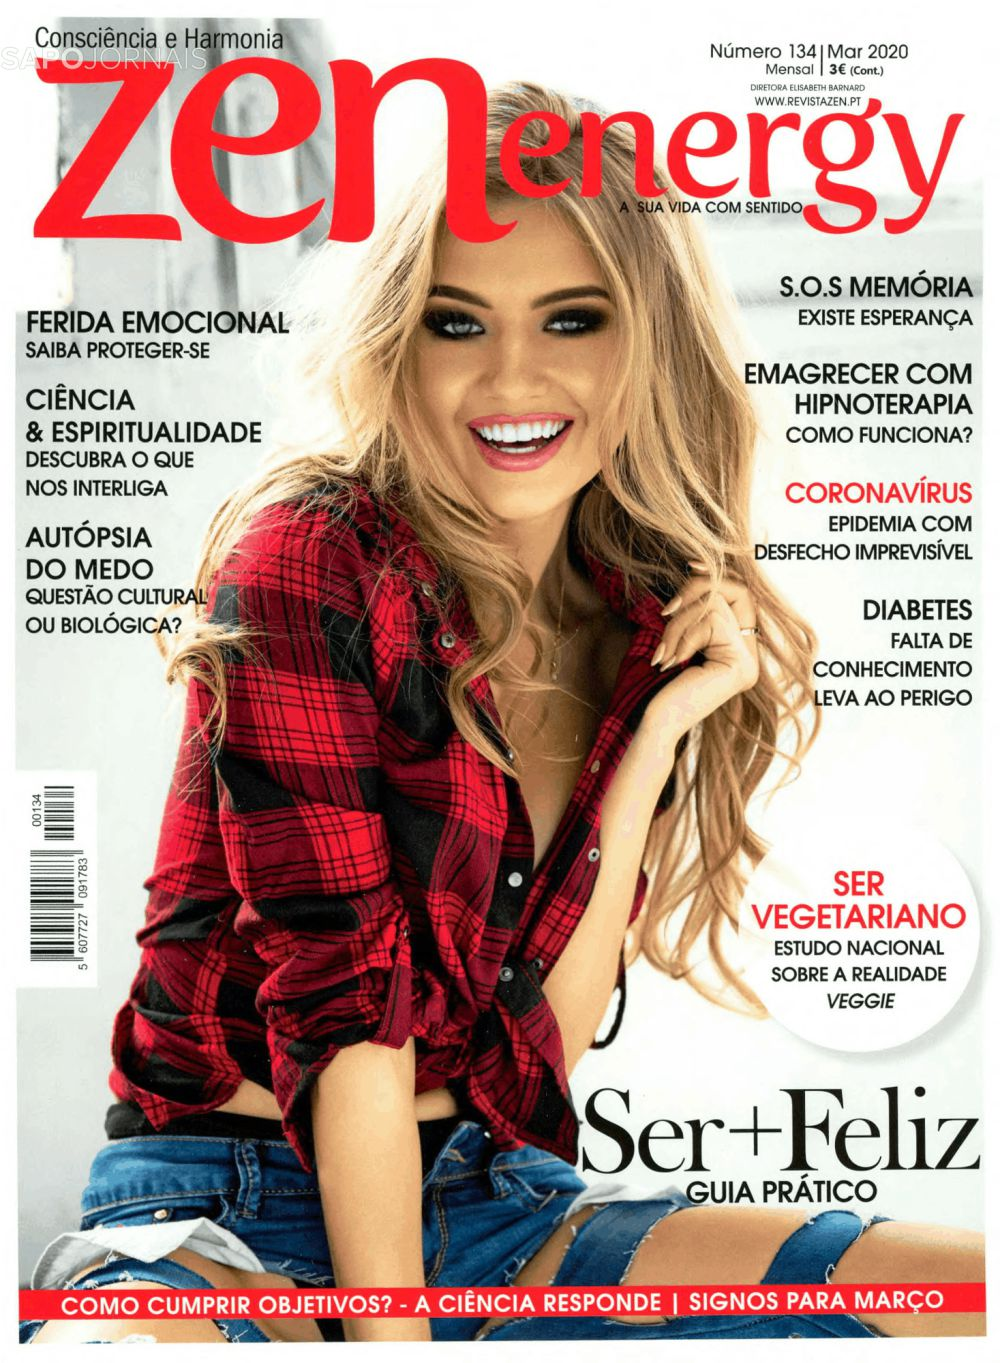 Capa da Revista Zen Energy